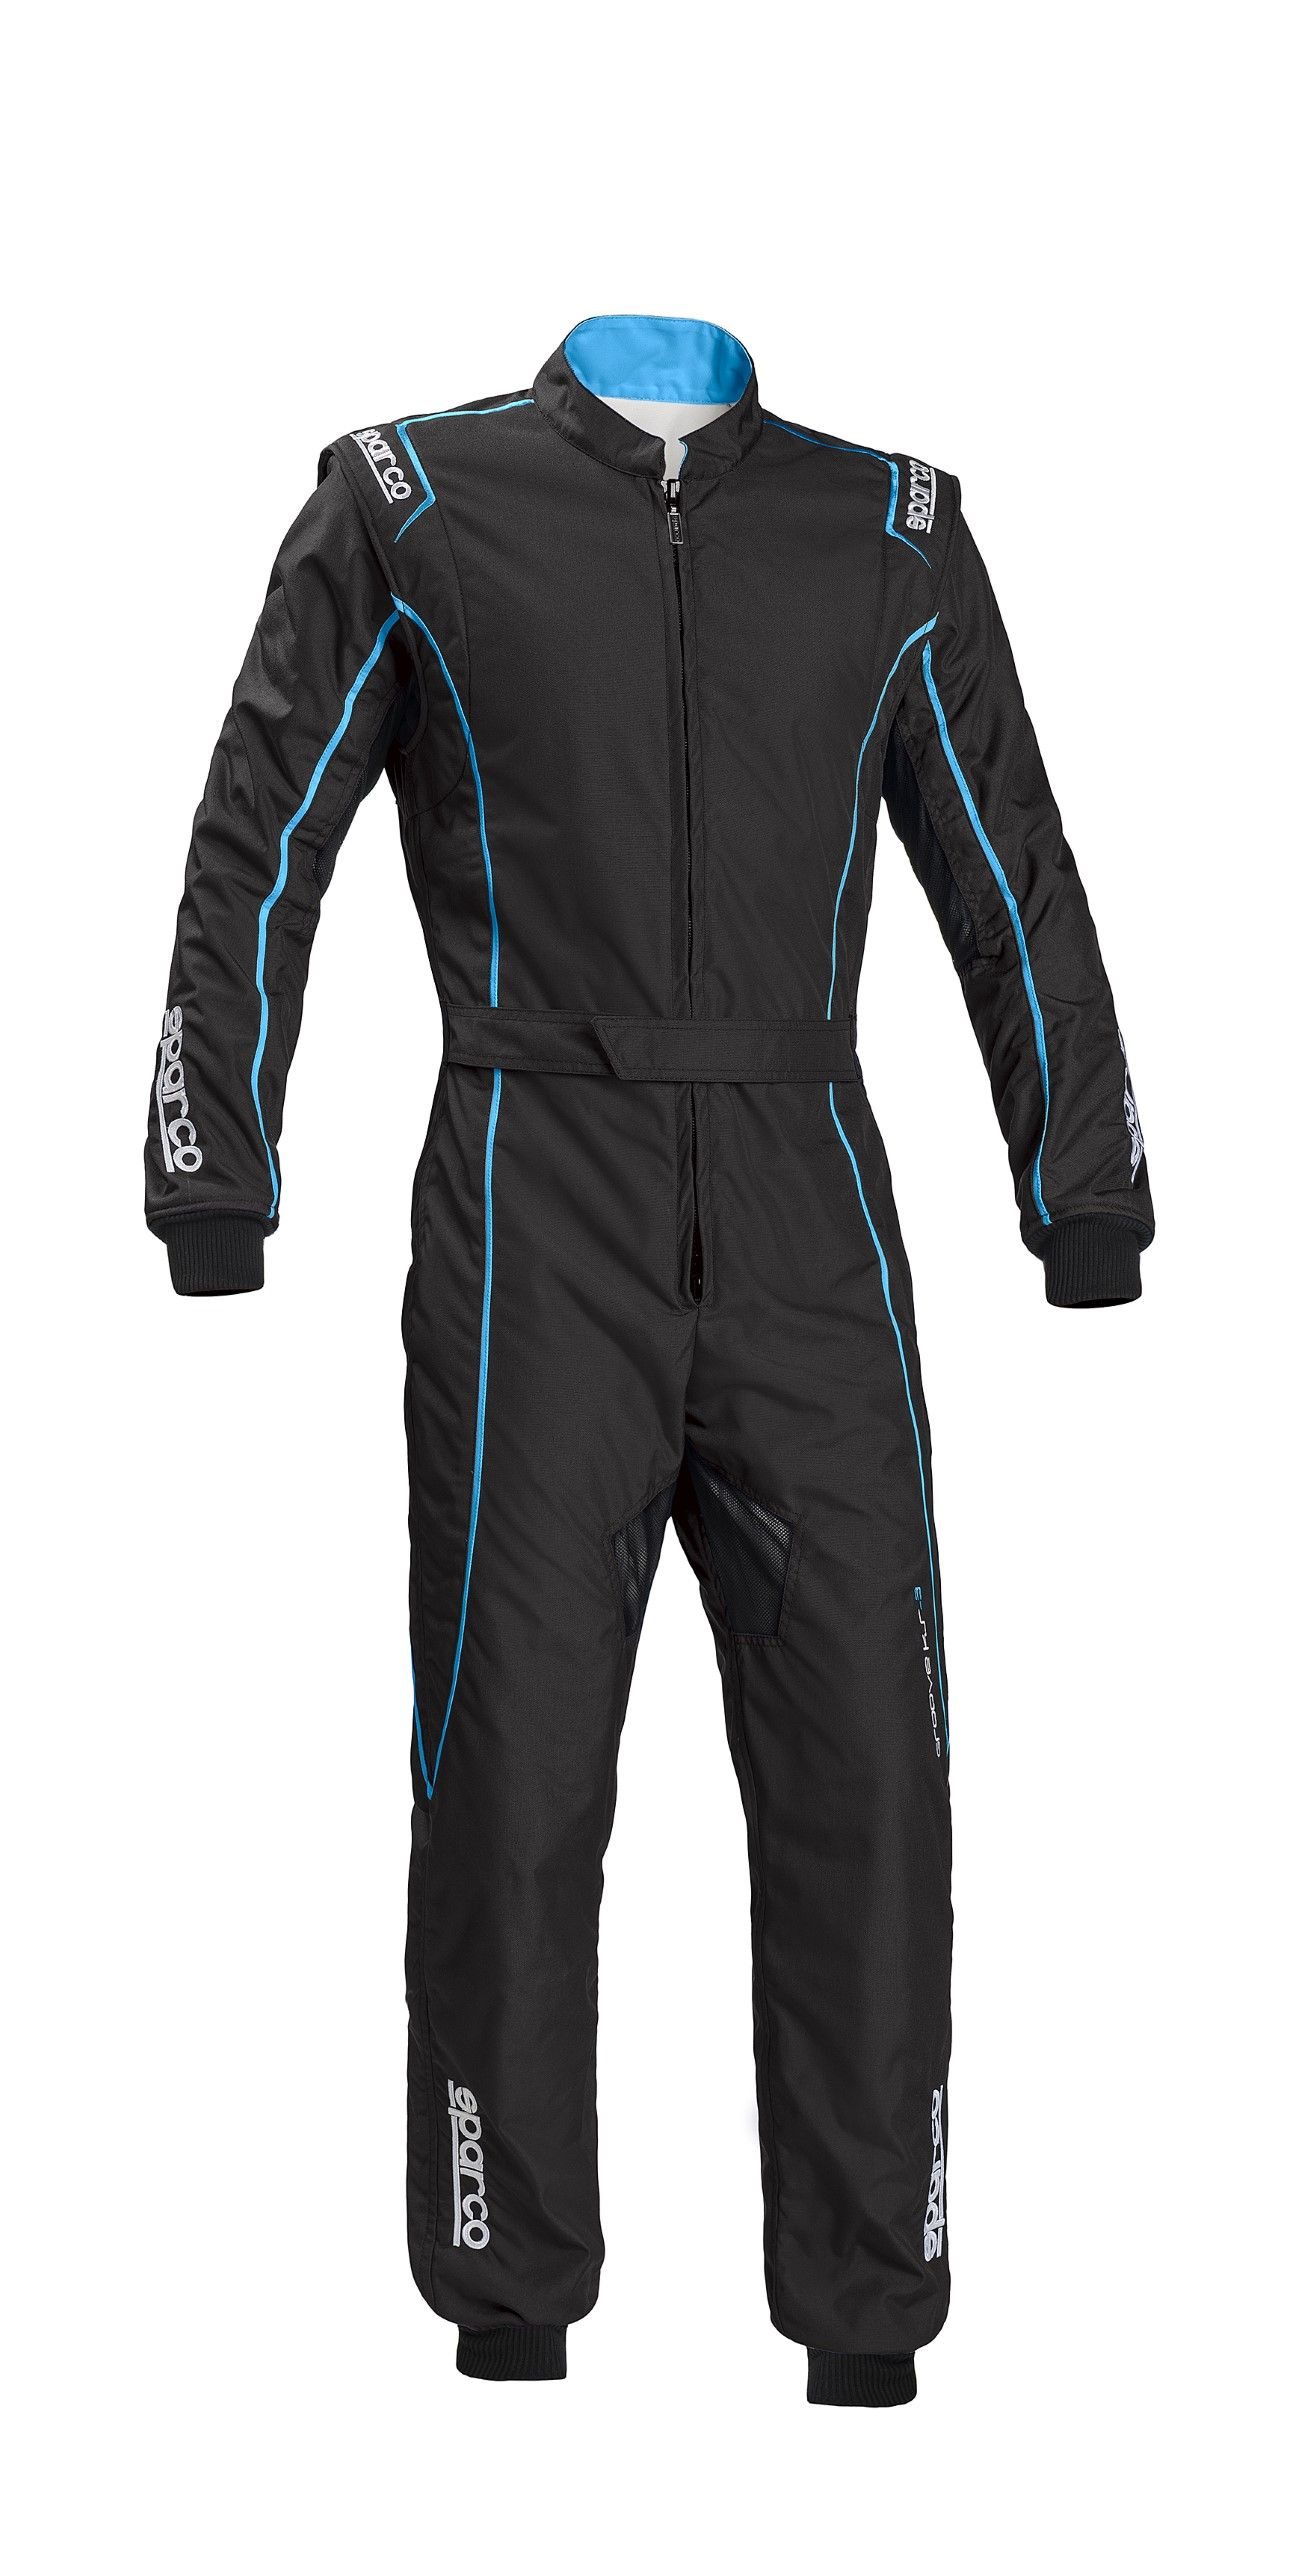 Sparco Groove Ks 3 Nrce In 2020 Races Outfit Casual Activewear Racing Suit